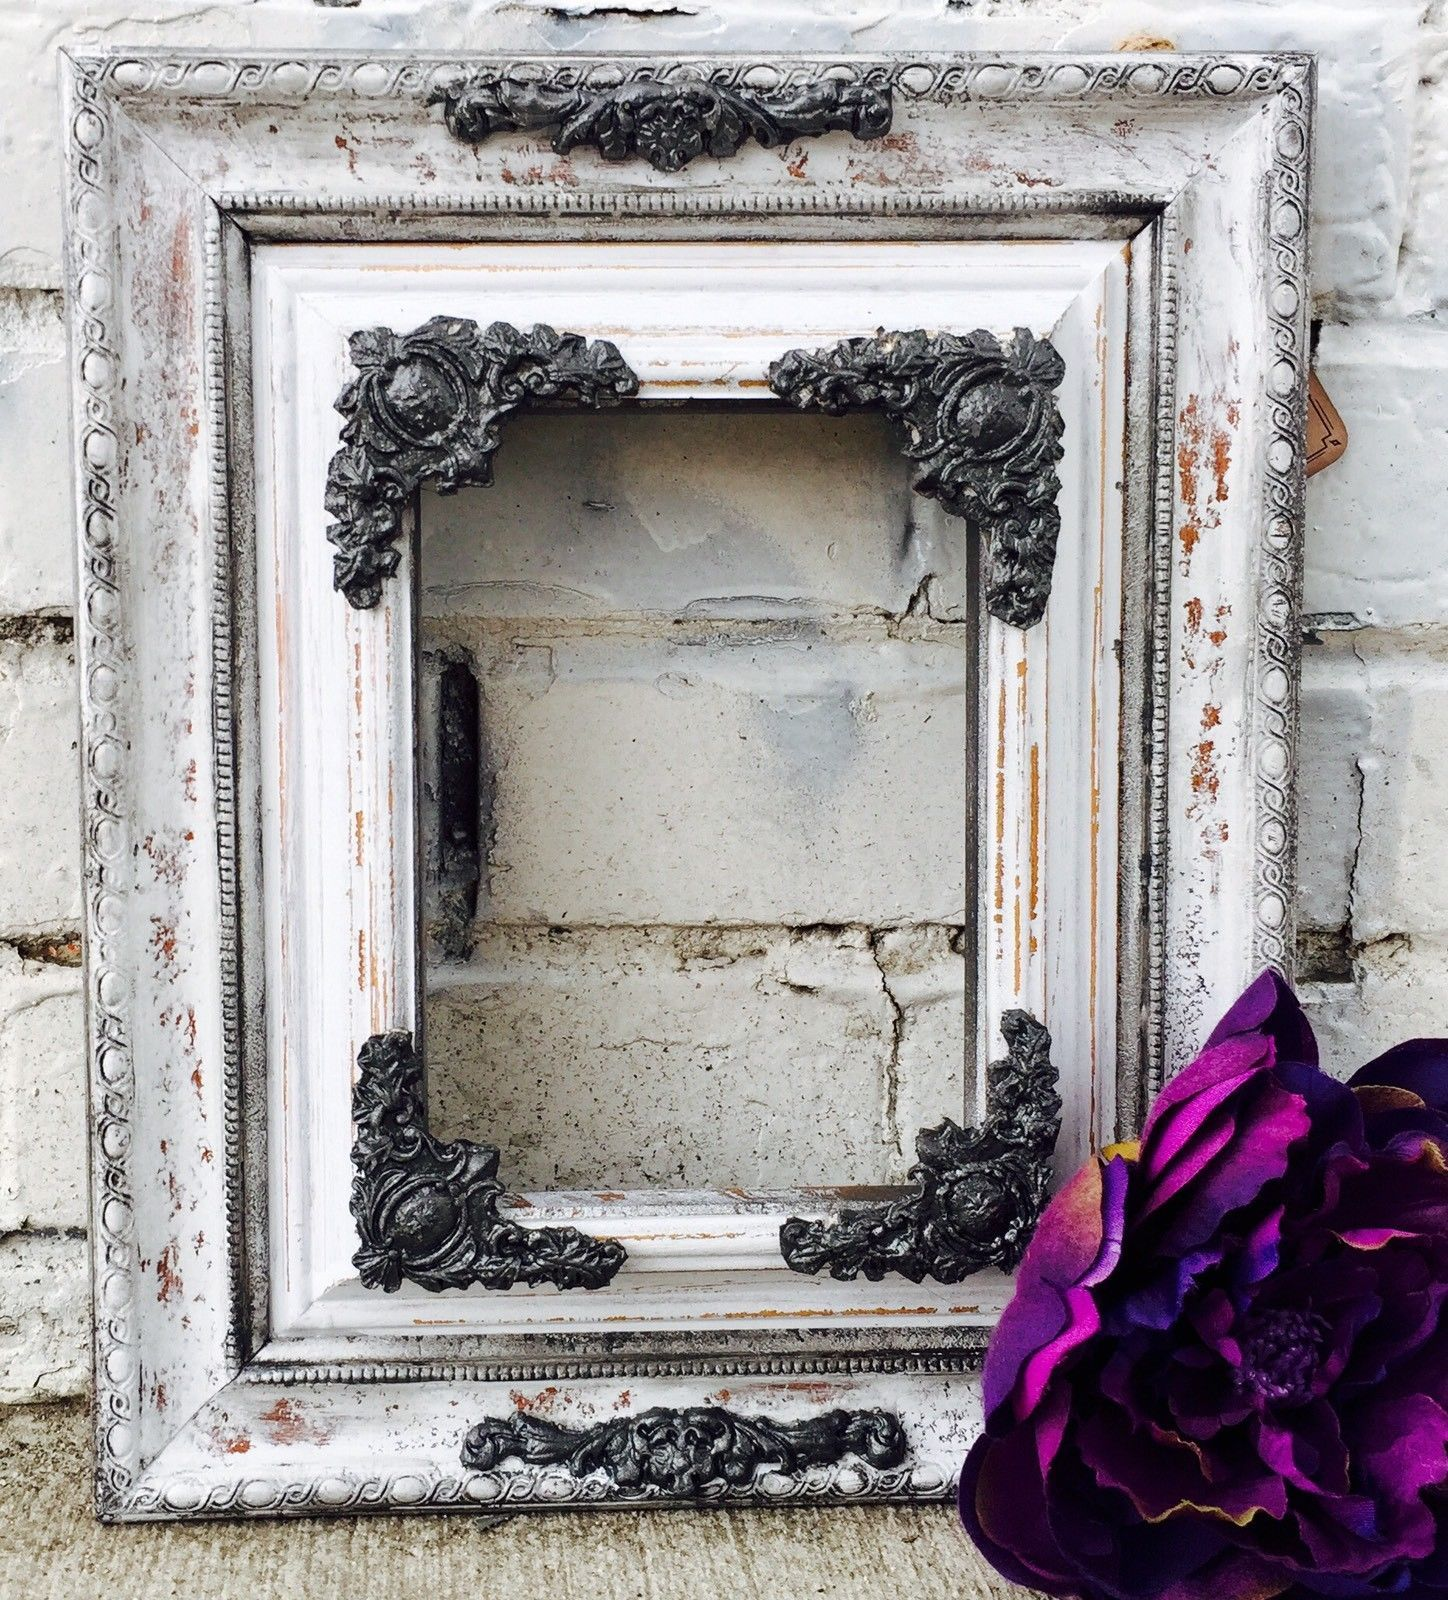 Refurbished Shabby Chic White And Charcoal Gray Picture Frame The Outside Dimensions Of The F Grey Picture Frames White Shabby Chic Shabby Chic Picture Frames